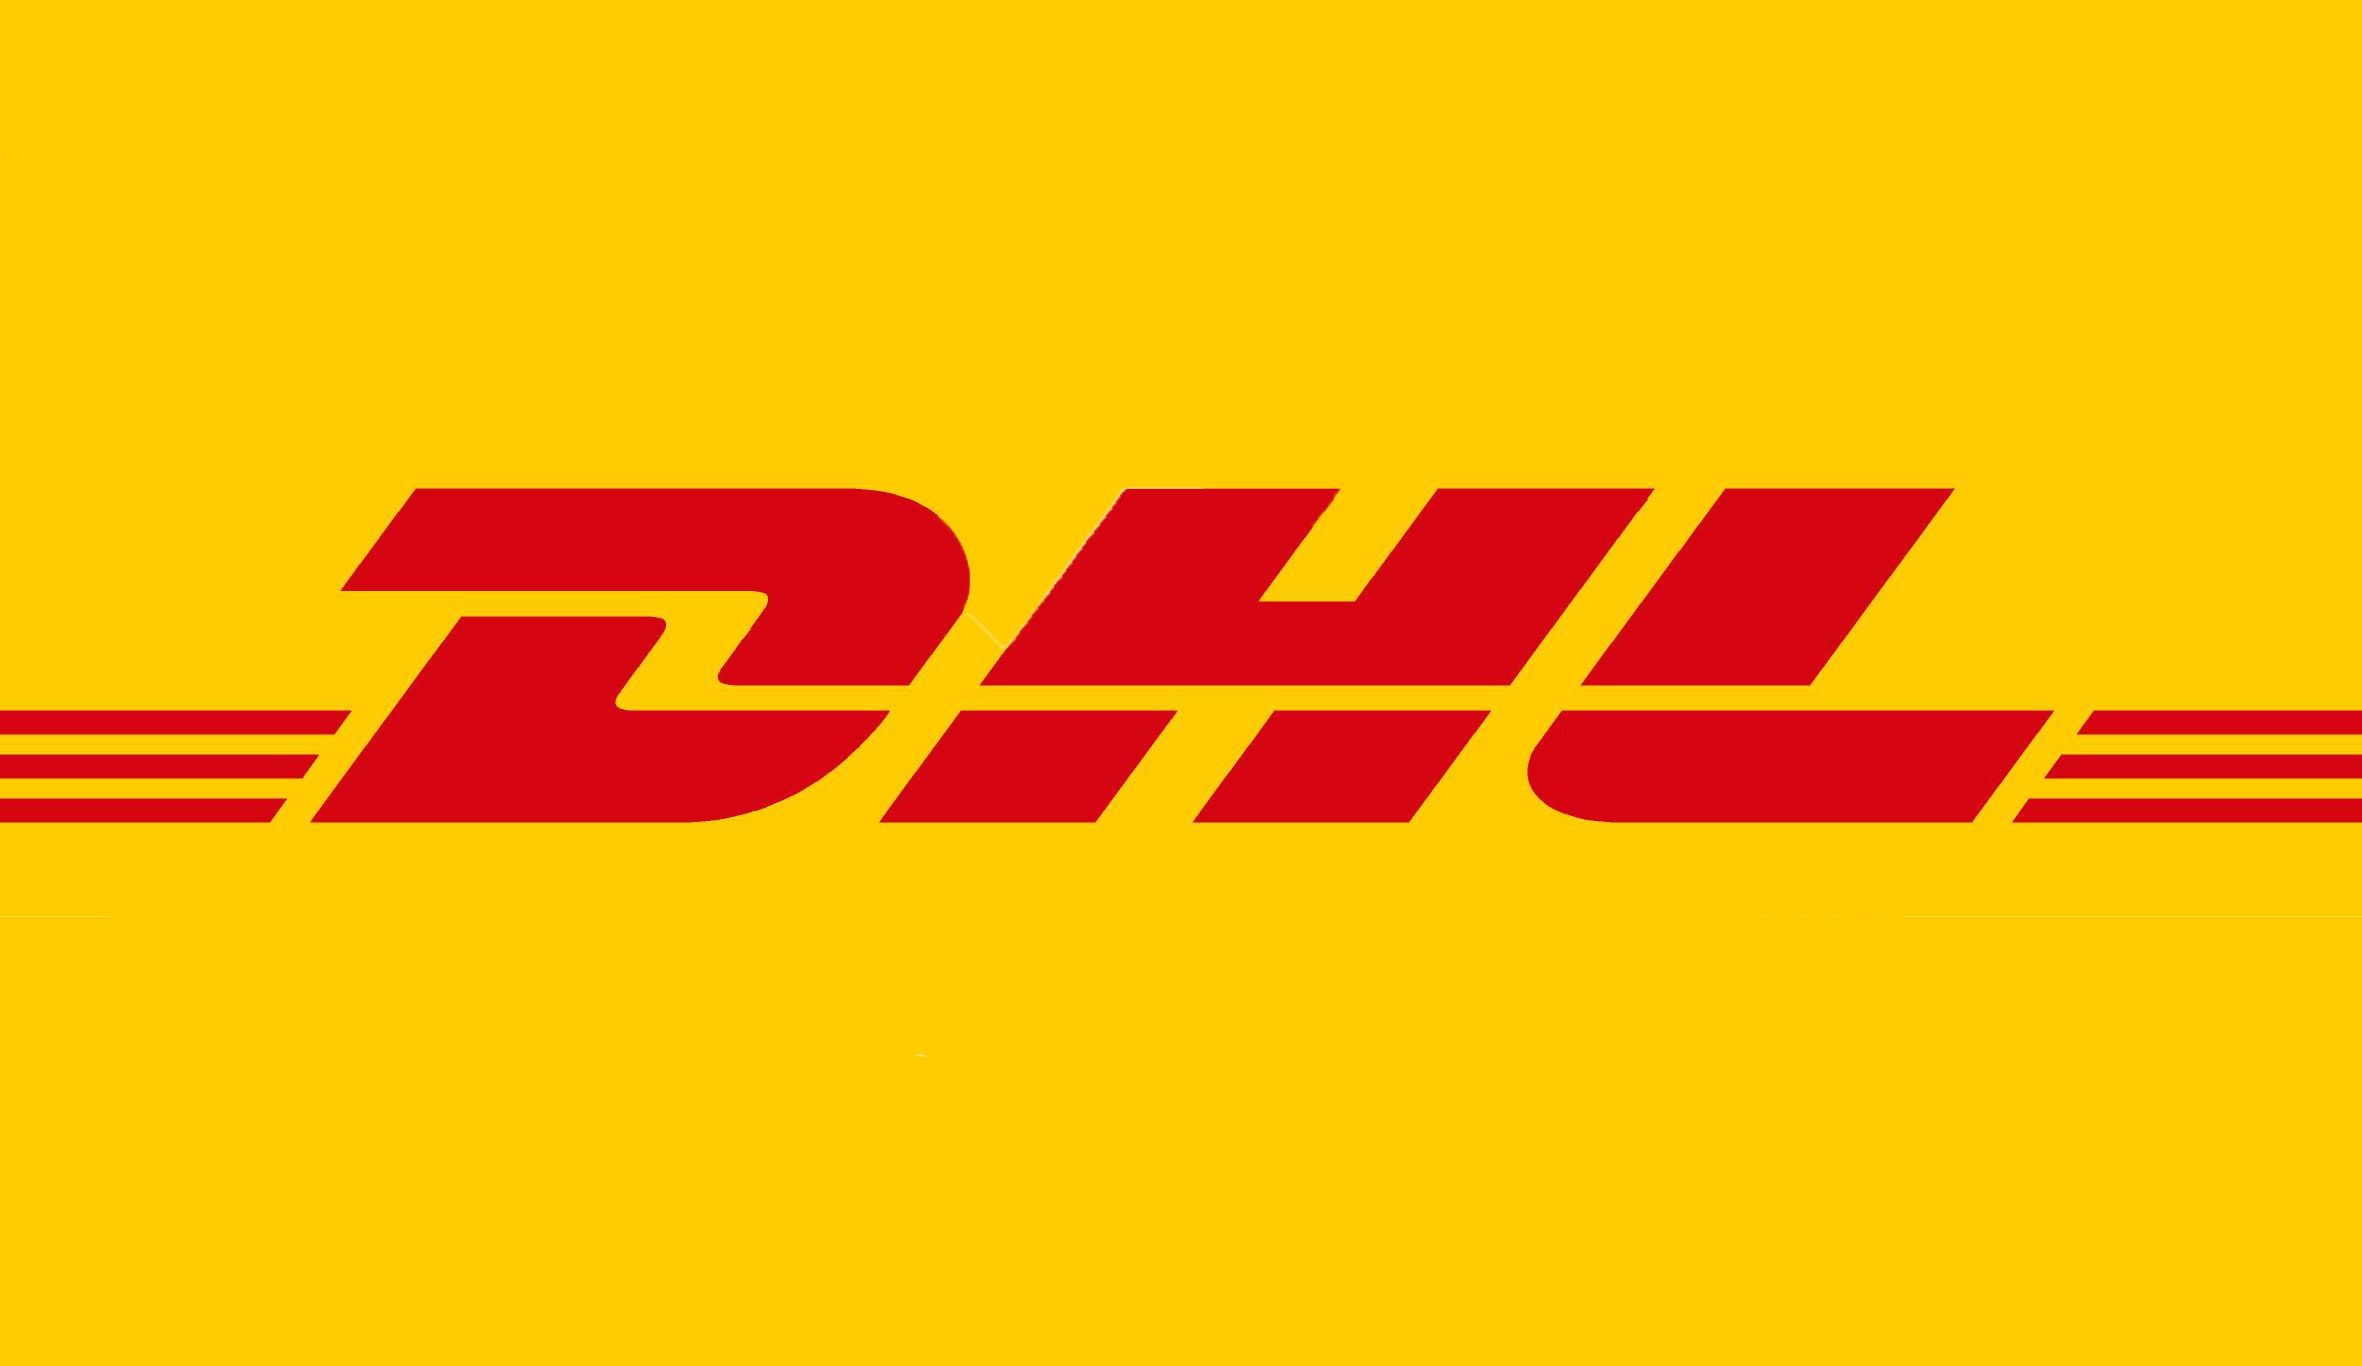 Potentially new game-changing trends revealed in DHL's 2016